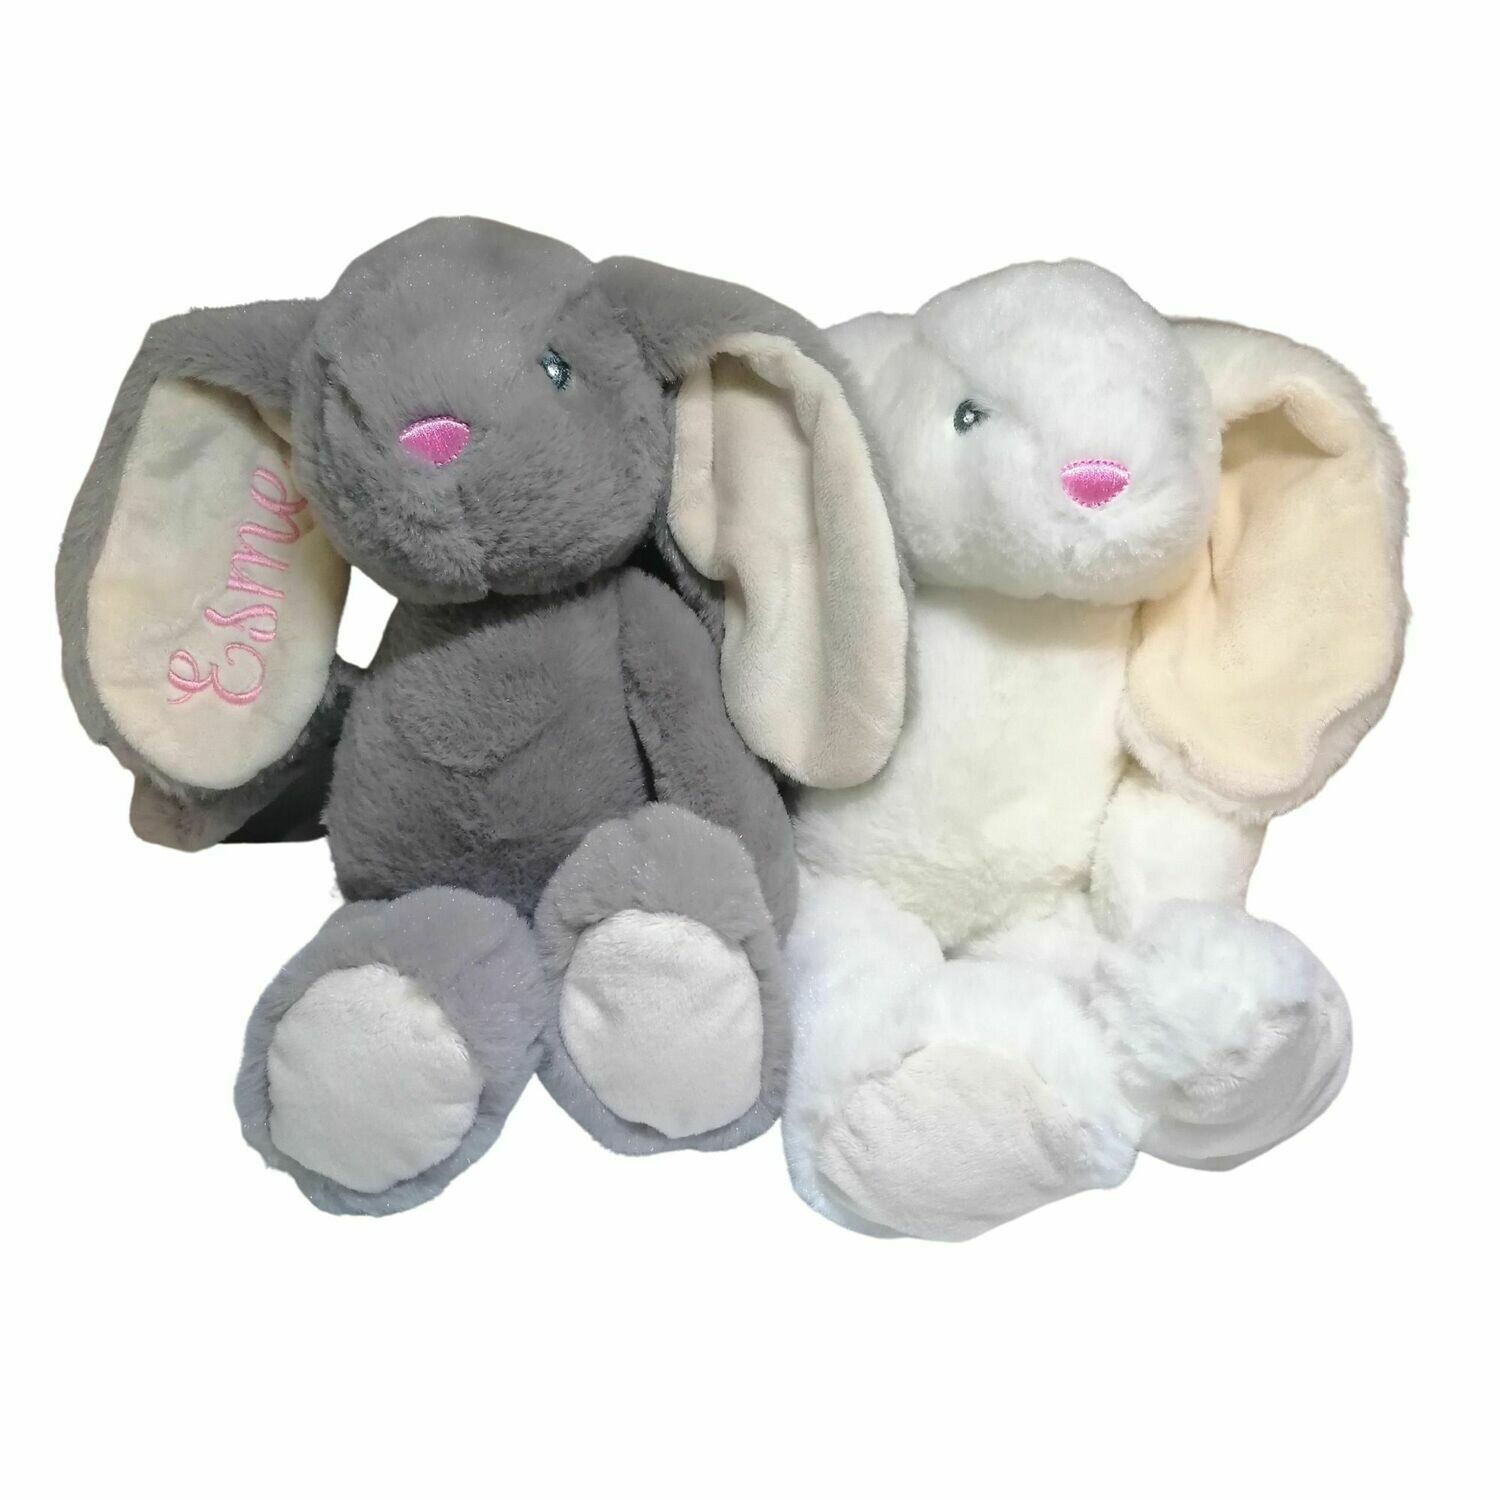 Embroidered Personalised Bunny Rabbit Soft Toy - 36cm Medium